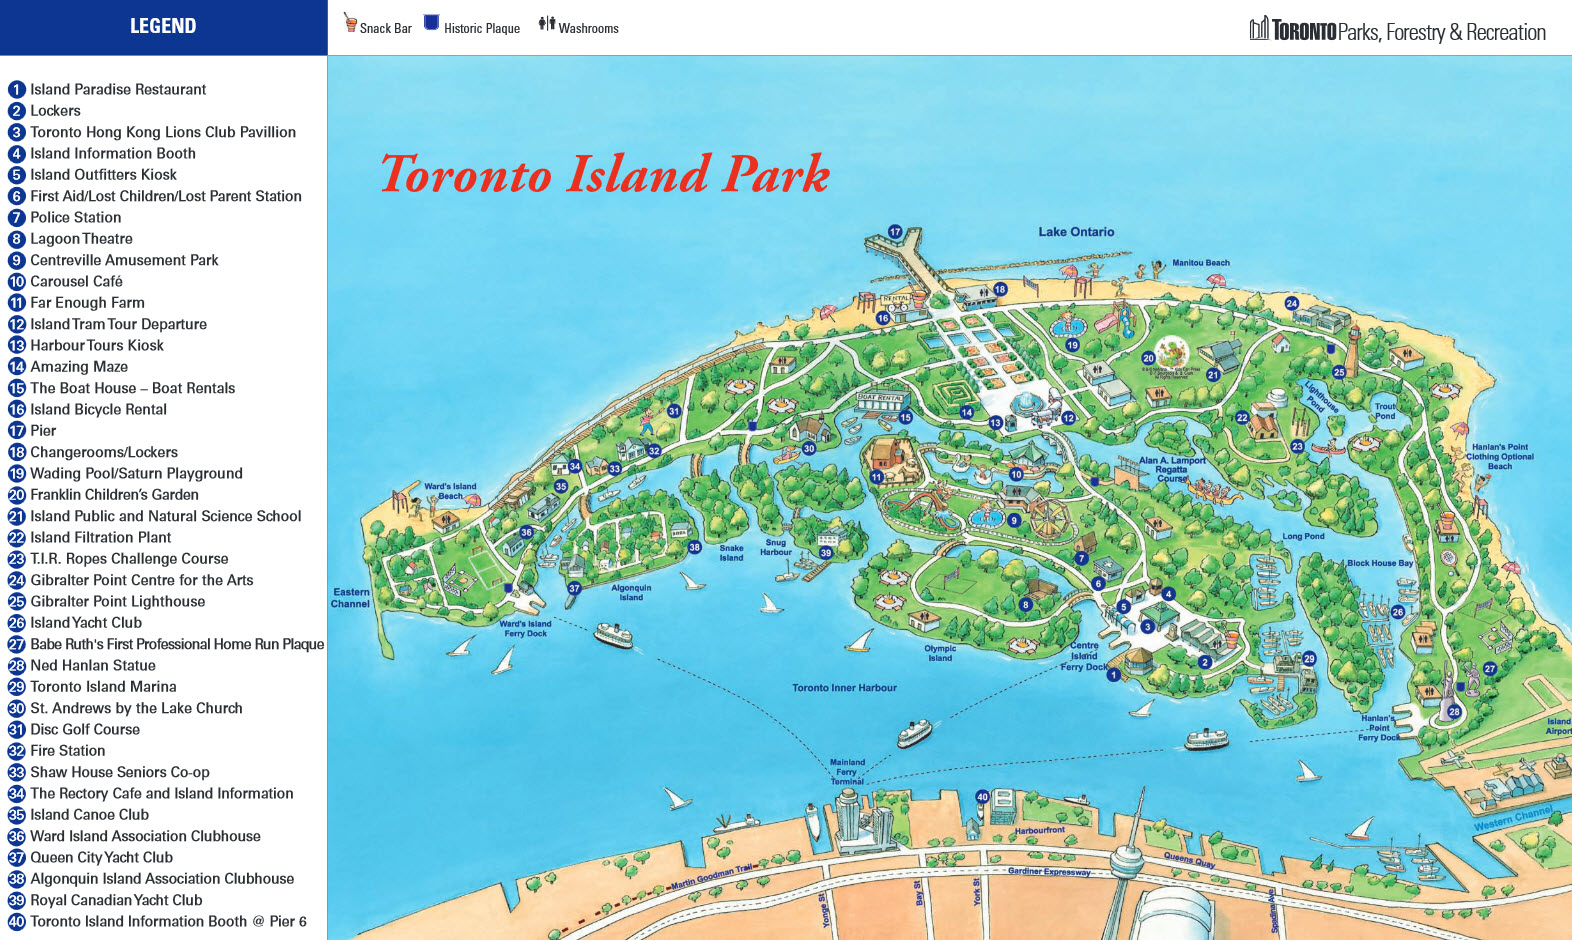 ** Image from Toronto Island website